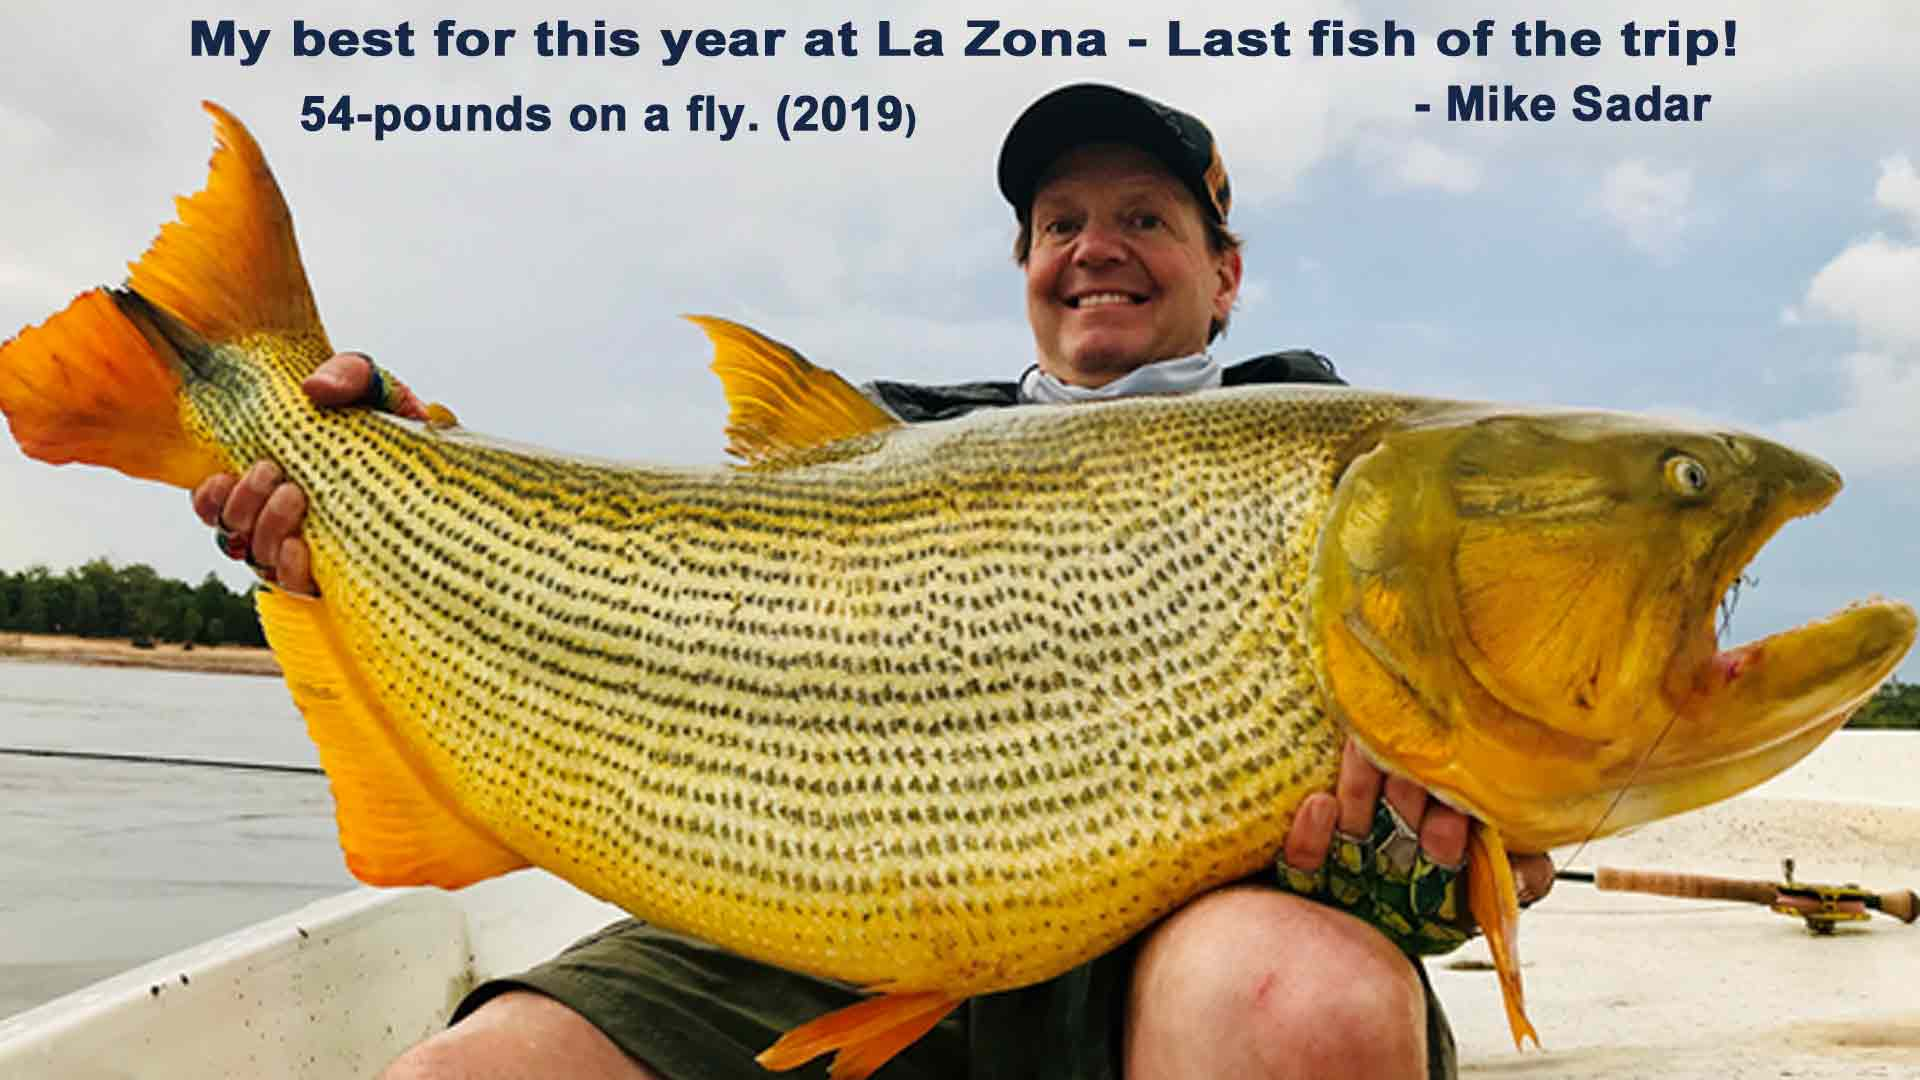 La Zona golden dorado fishing